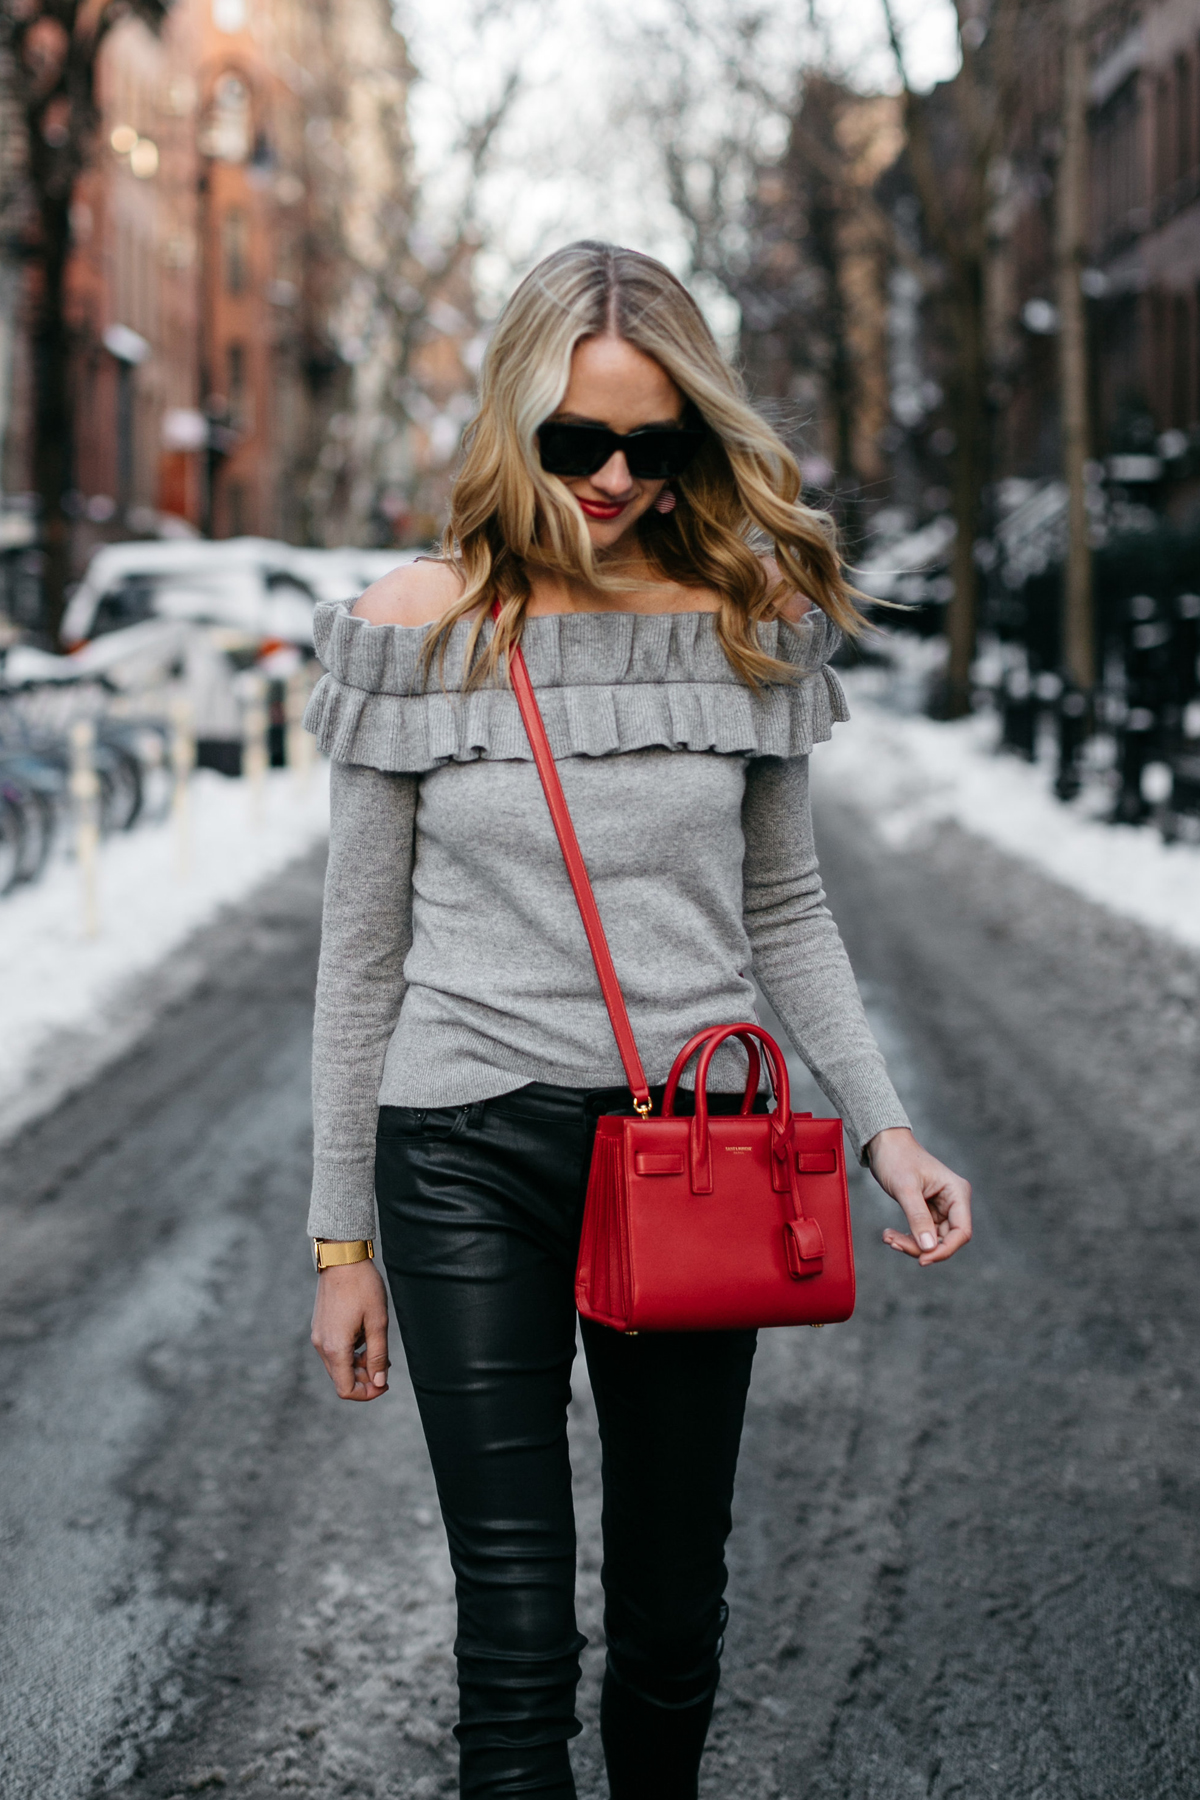 NYFW Fall/Winter 2017, Streetstyle, Club Monaco Grey Ruffle Off-the-Shoulder Sweater, Black Faux Leather Pants, Saint Laurent Sac de Jour Red